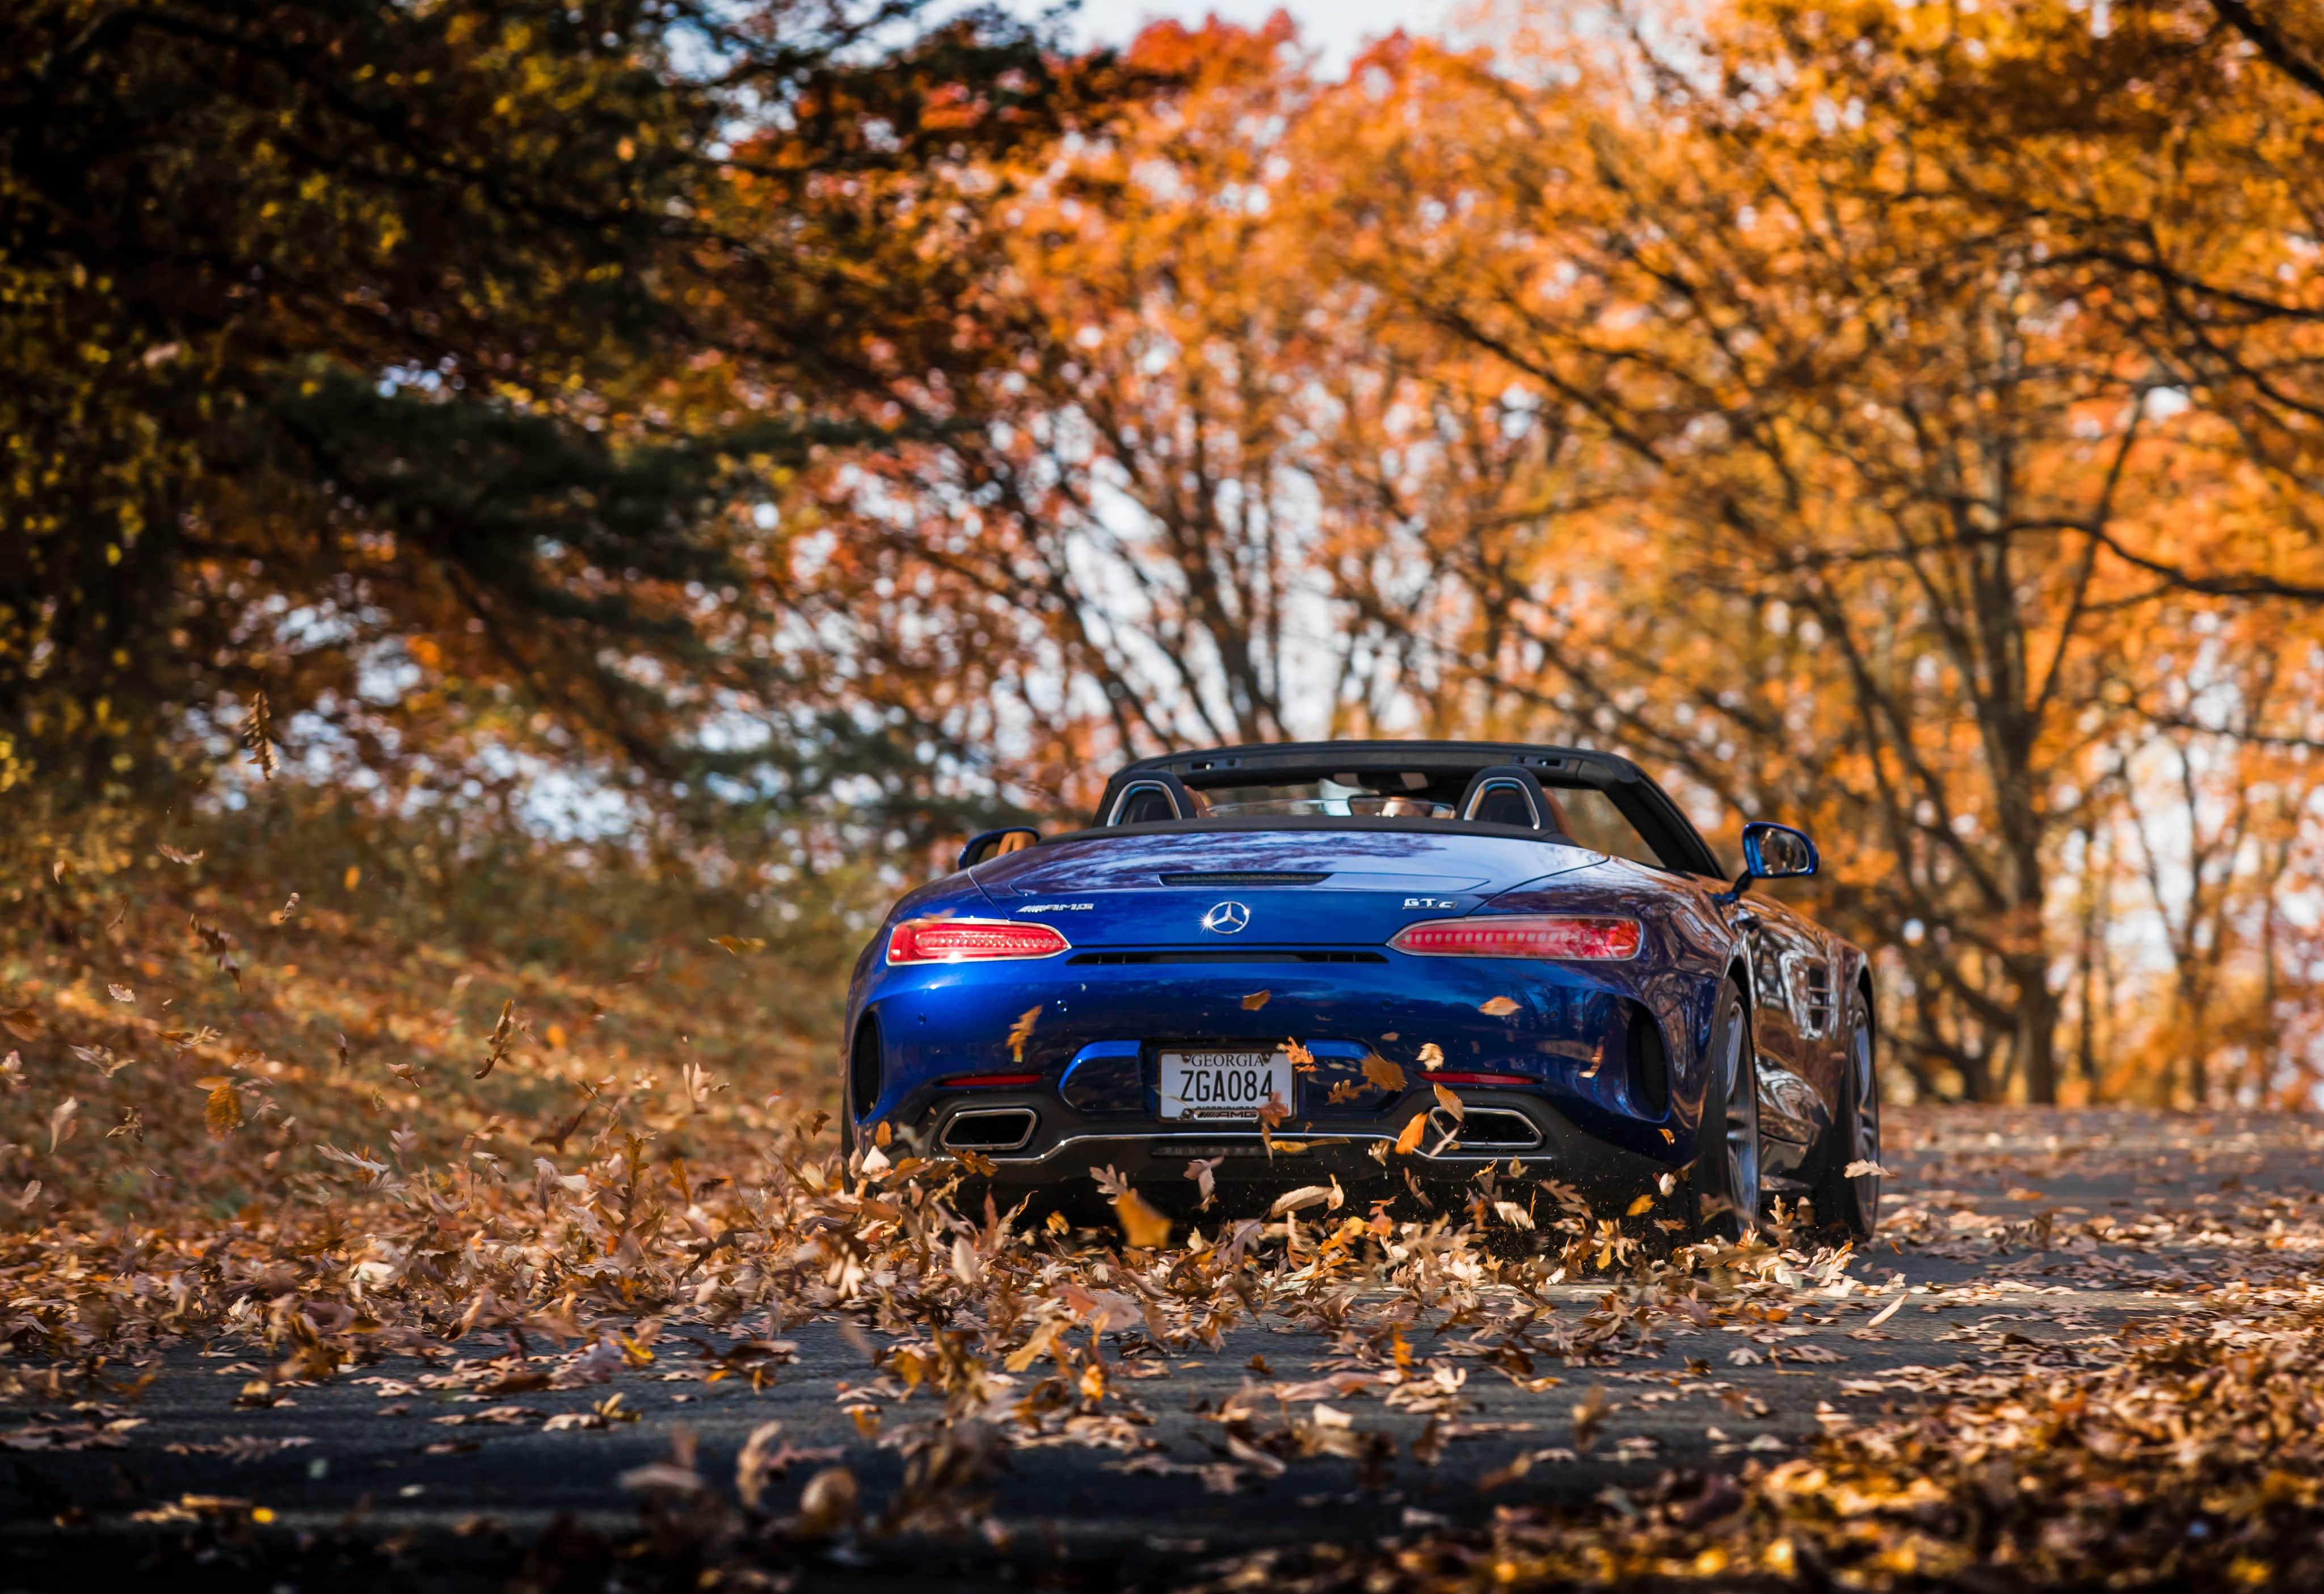 2018 Mercedes Amg GtC Roadster Autumn Road 4k #2938 Wallpapers and ...